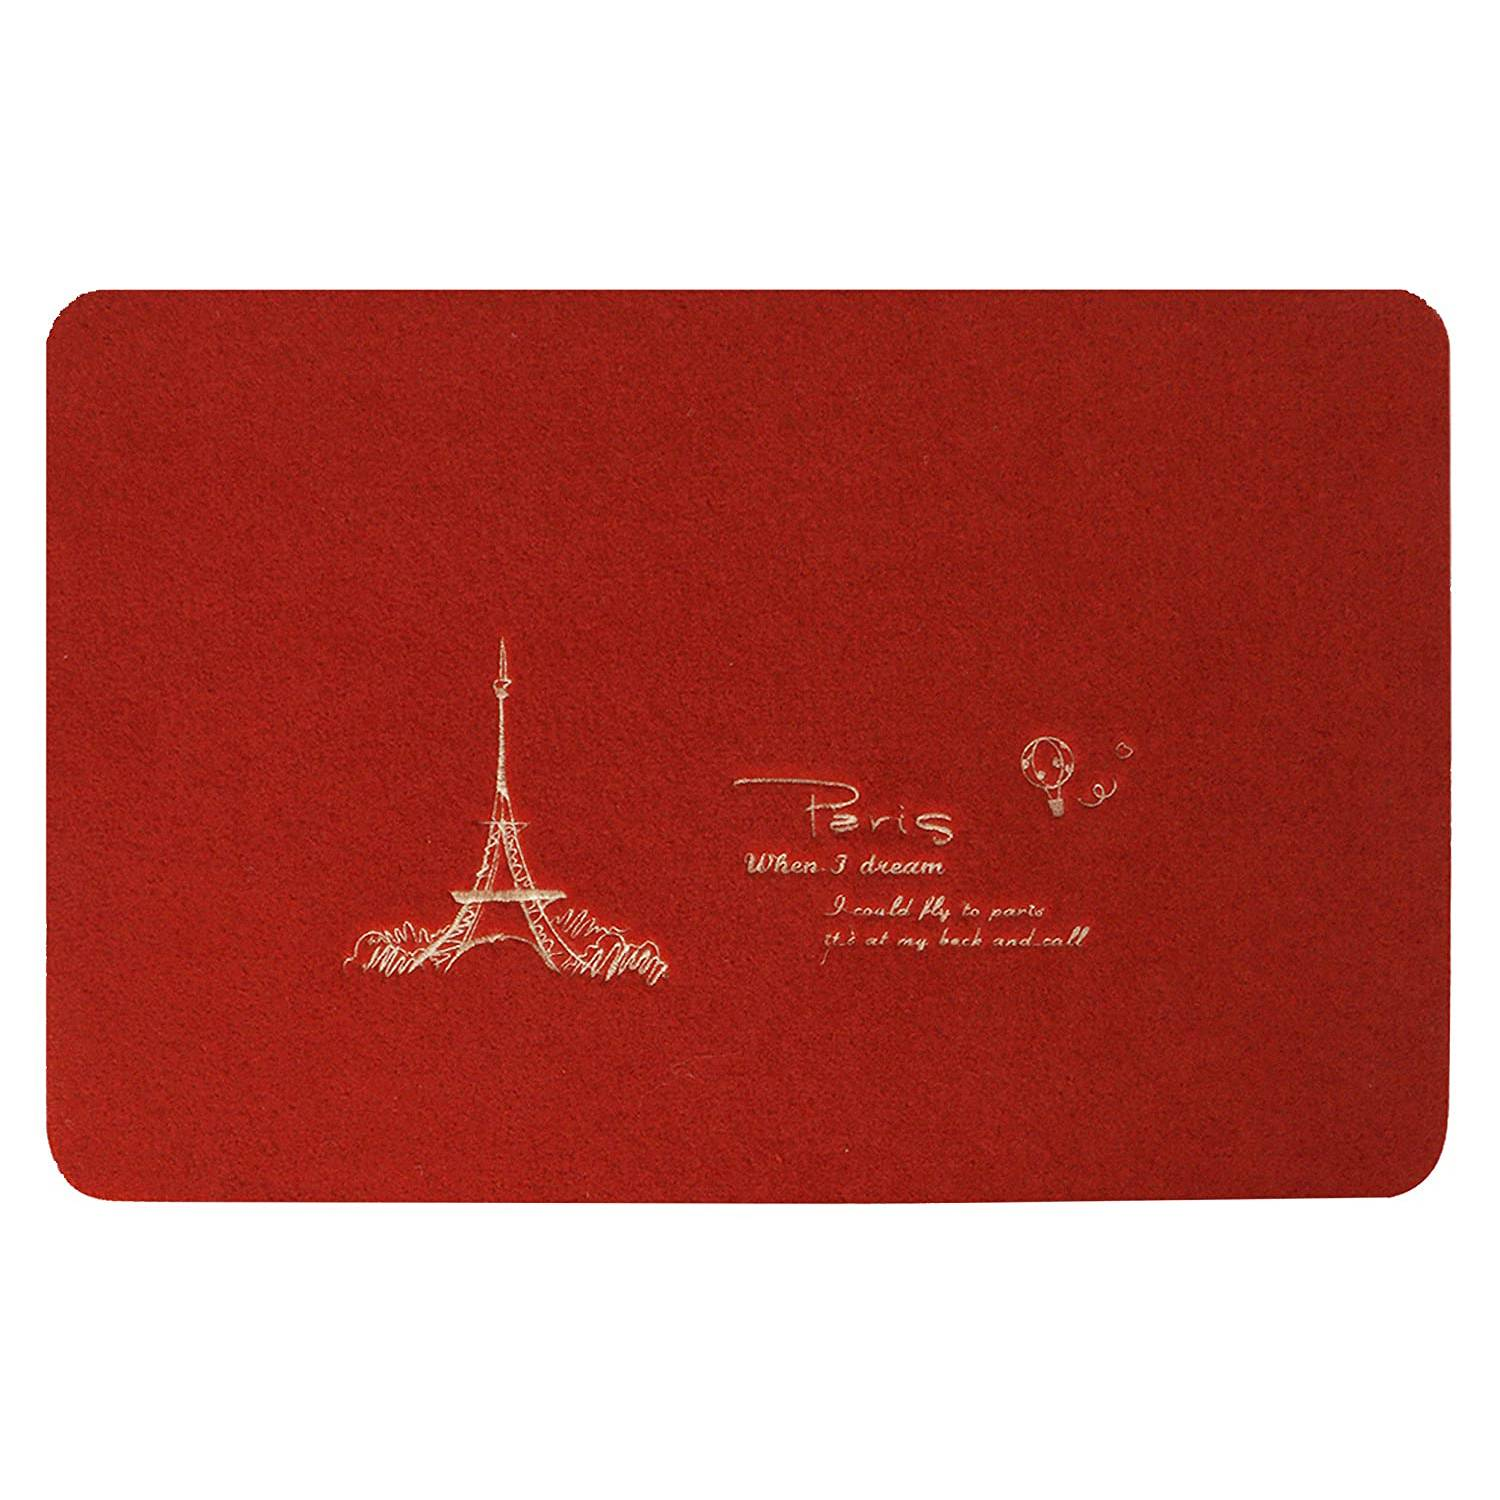 Red. AND008604. Size- 60x40 cm.